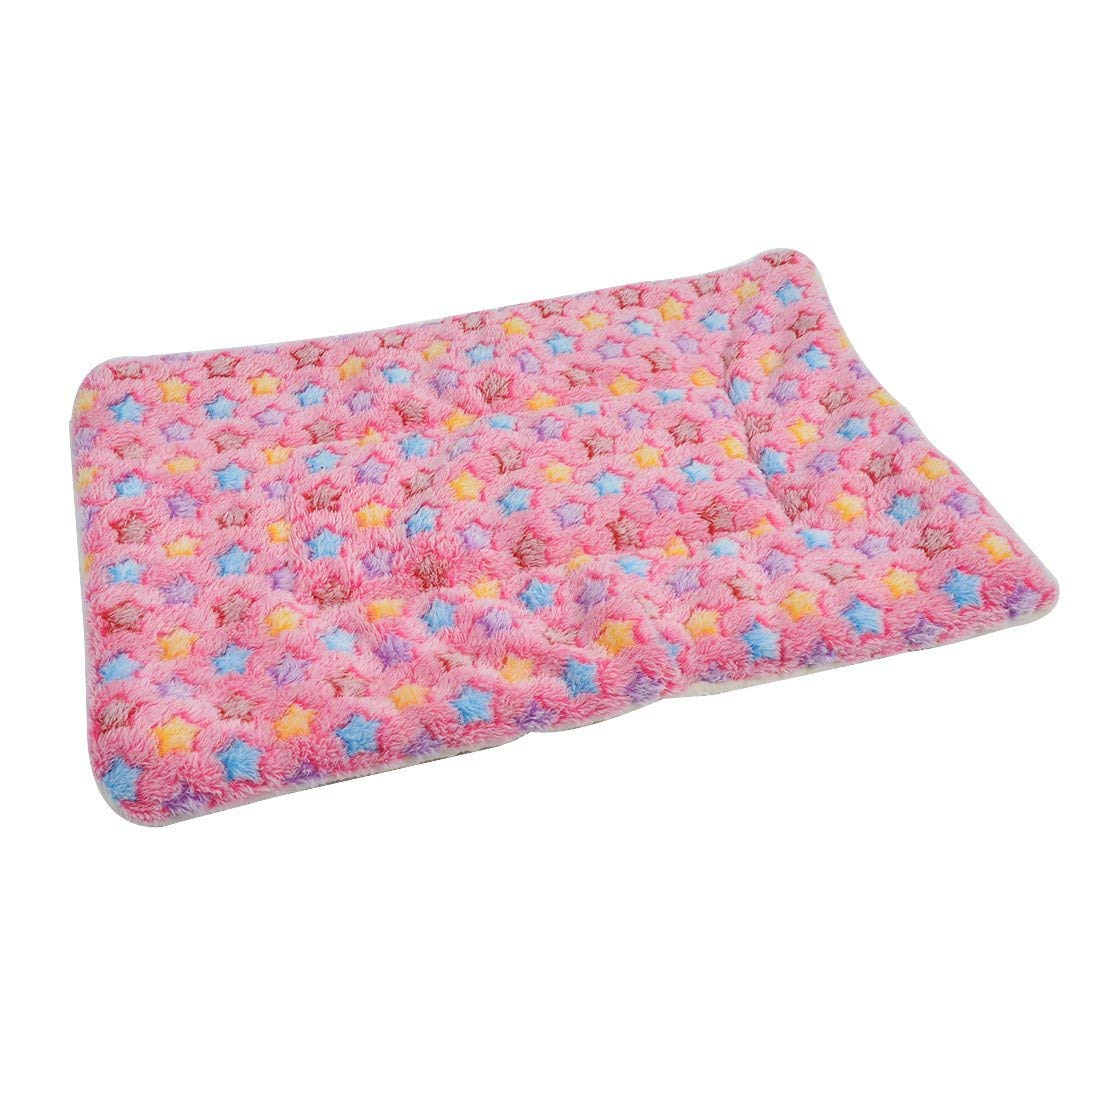 Flannel Star Print Pet Doggy Cat Bed Cushion Soft Warm Sleep Mat Dog Blanket S colorful